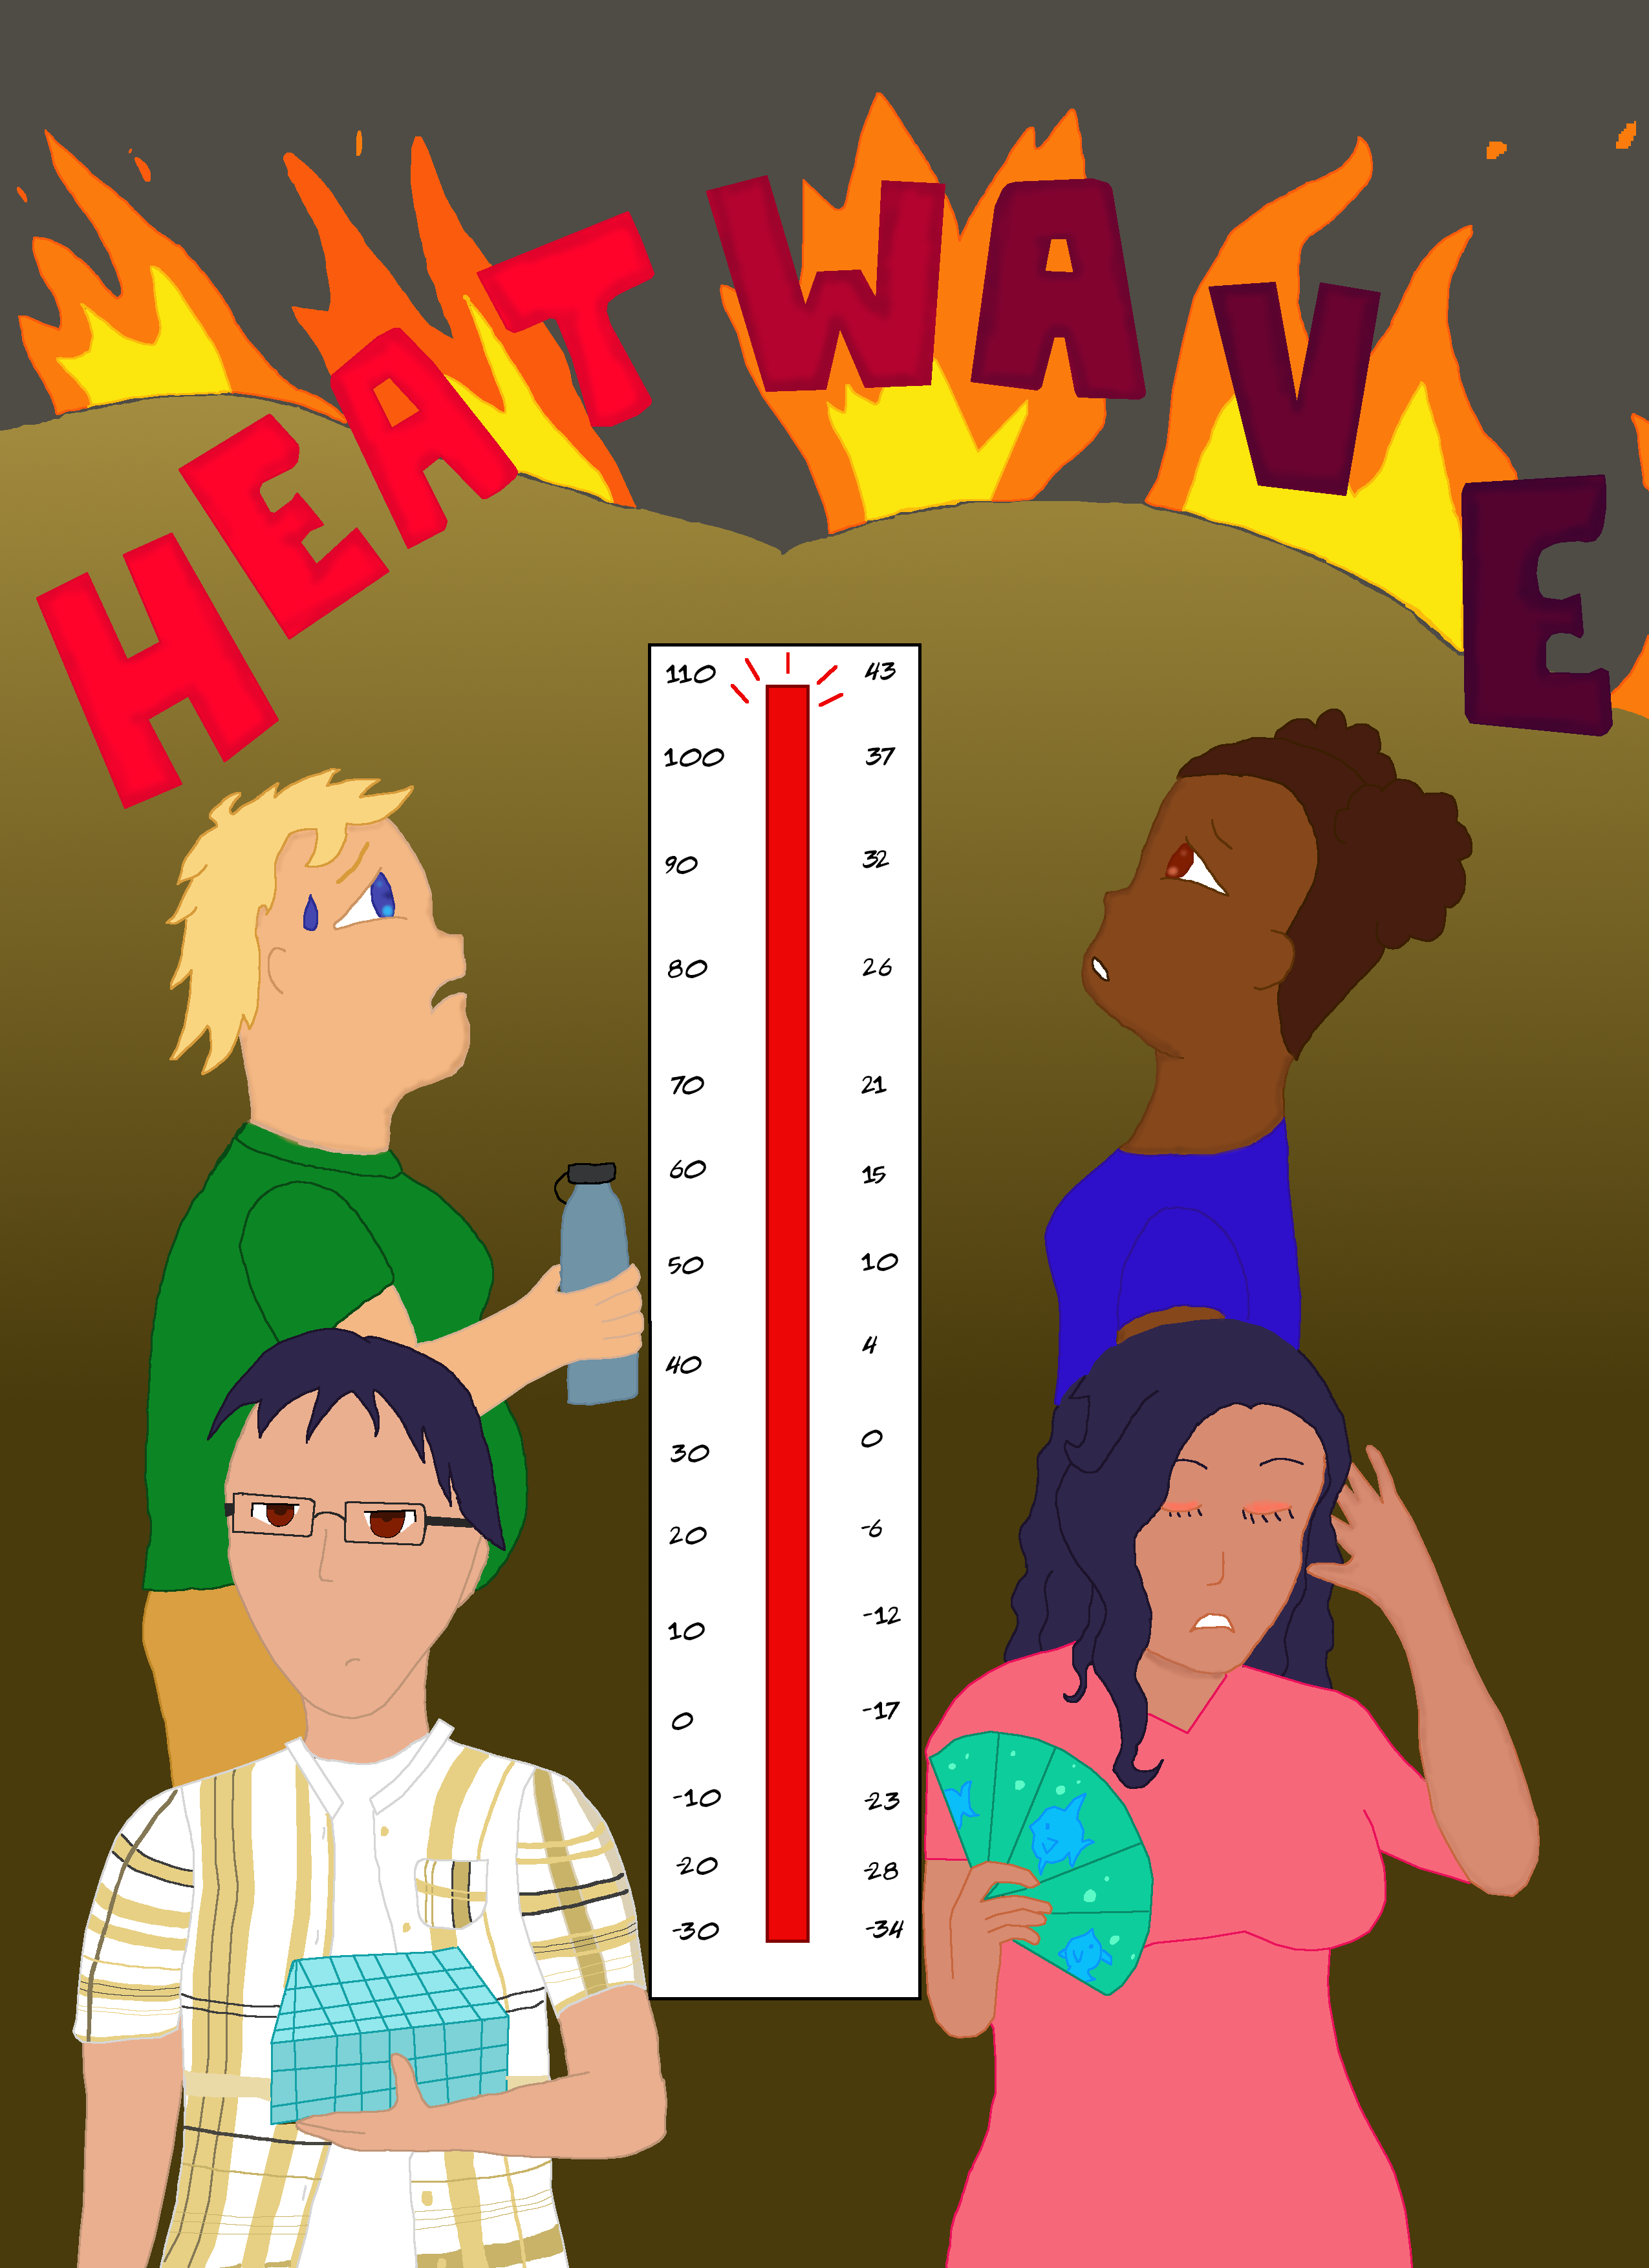 Cover and title reveal for Heatwave